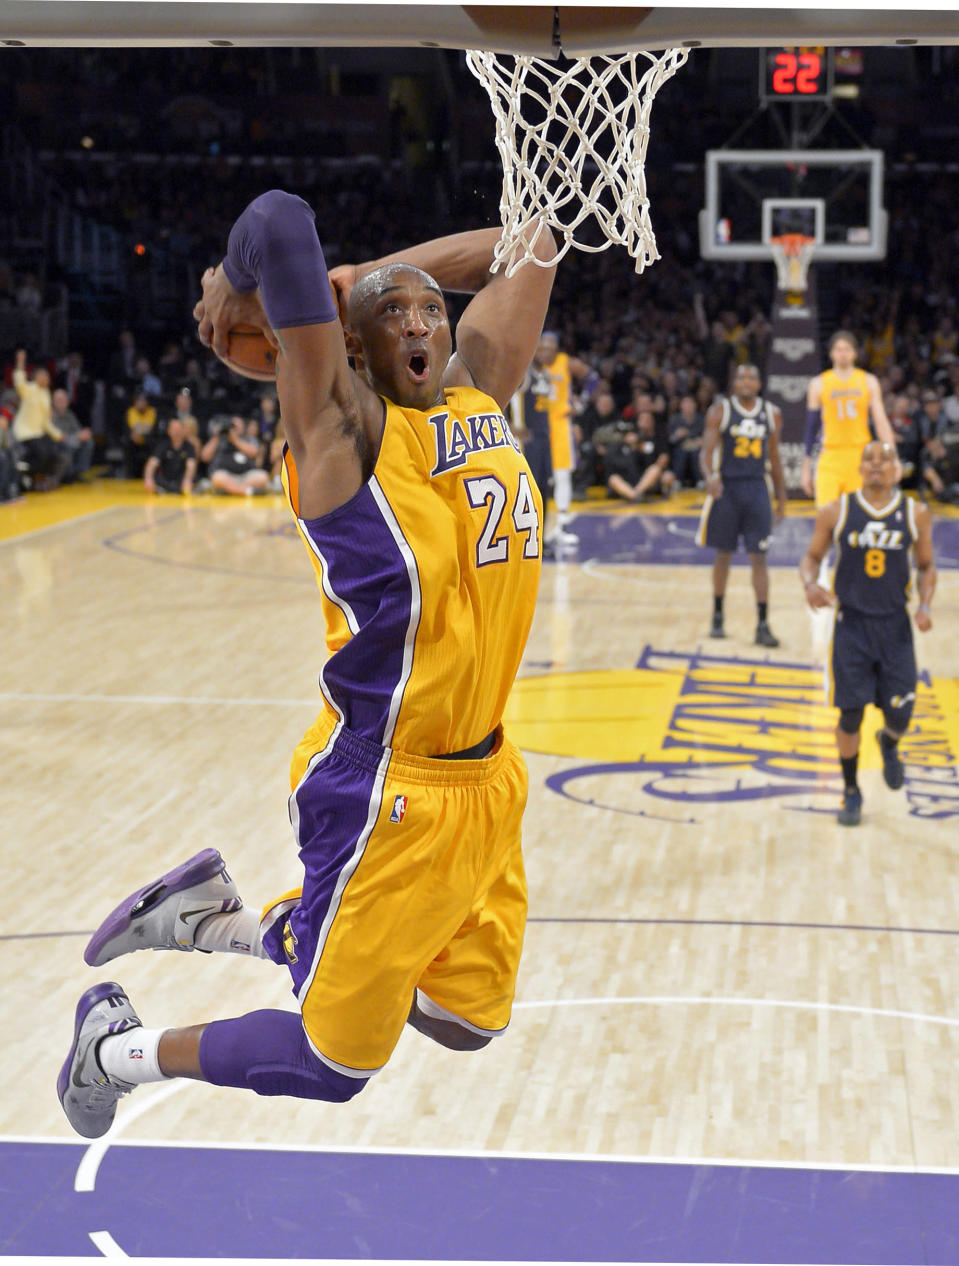 FILE - In this Jan. 25, 2013 file photo, Los Angeles Lakers guard Kobe Bryant goes up for a dunk during the first half of an NBA basketball game against the Utah Jazz, in Los Angeles. The Lakers have signed Bryant to a 2-year contract extension. General manager Mitch Kupchak made the announcement Monday, Nov. 25, 2013, ending speculation that Bryant could end up with another team after this season. (AP Photo/Mark J. Terrill, File)